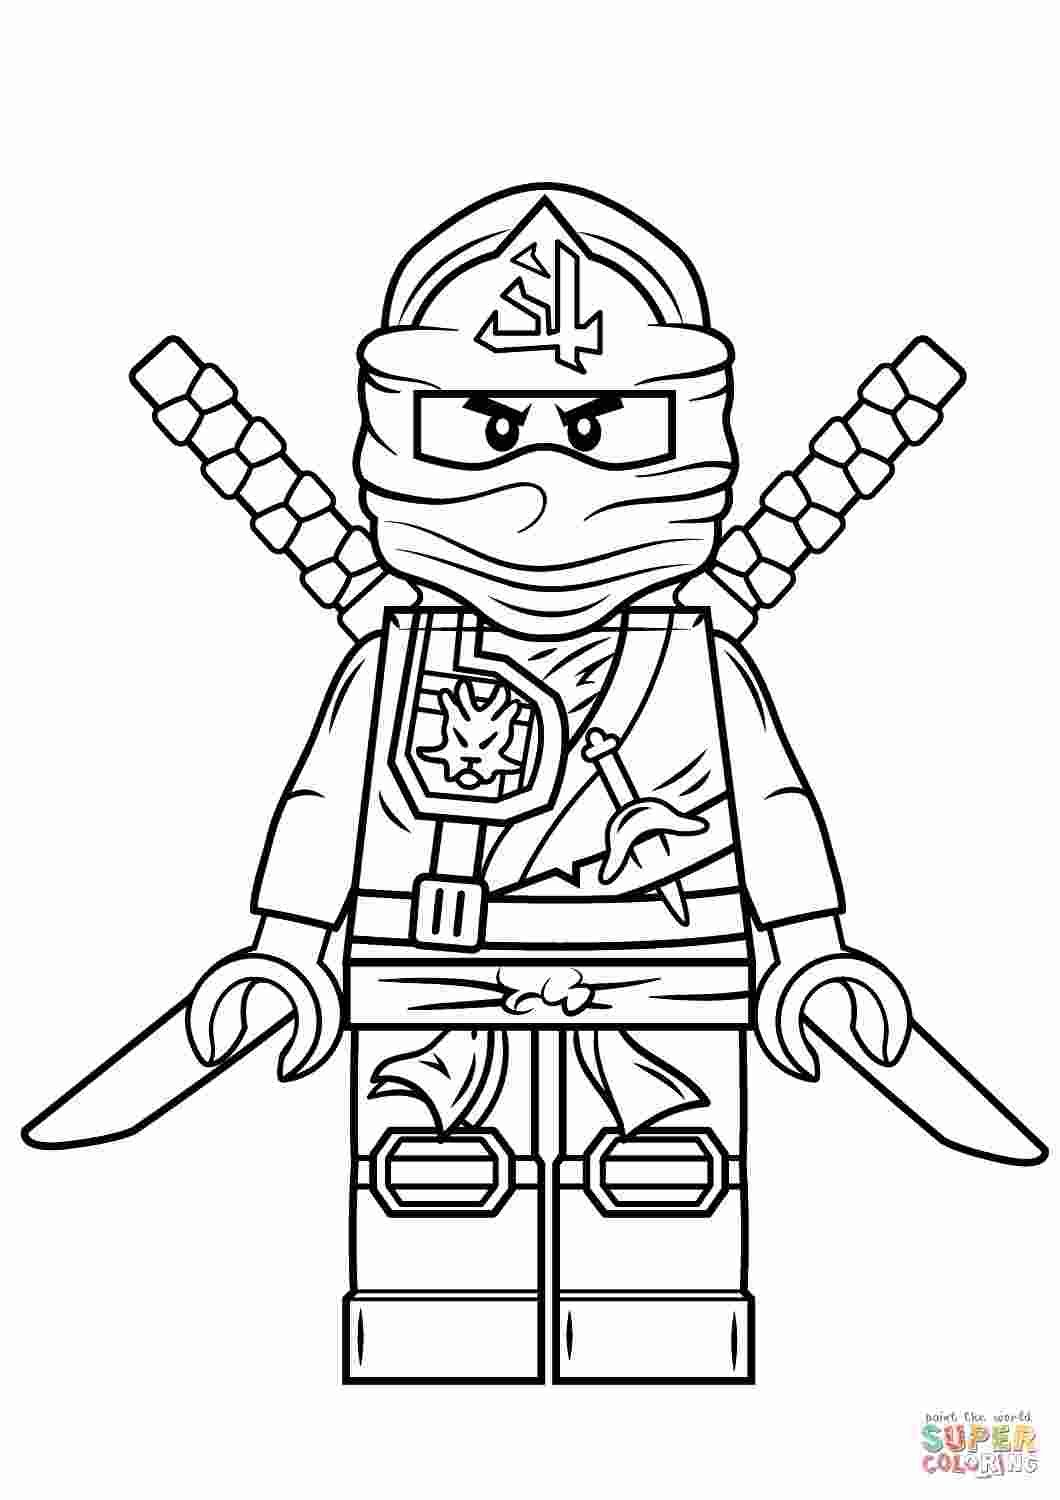 Coloring Pages Hm Coloring Pages Ninjago Golden New 99